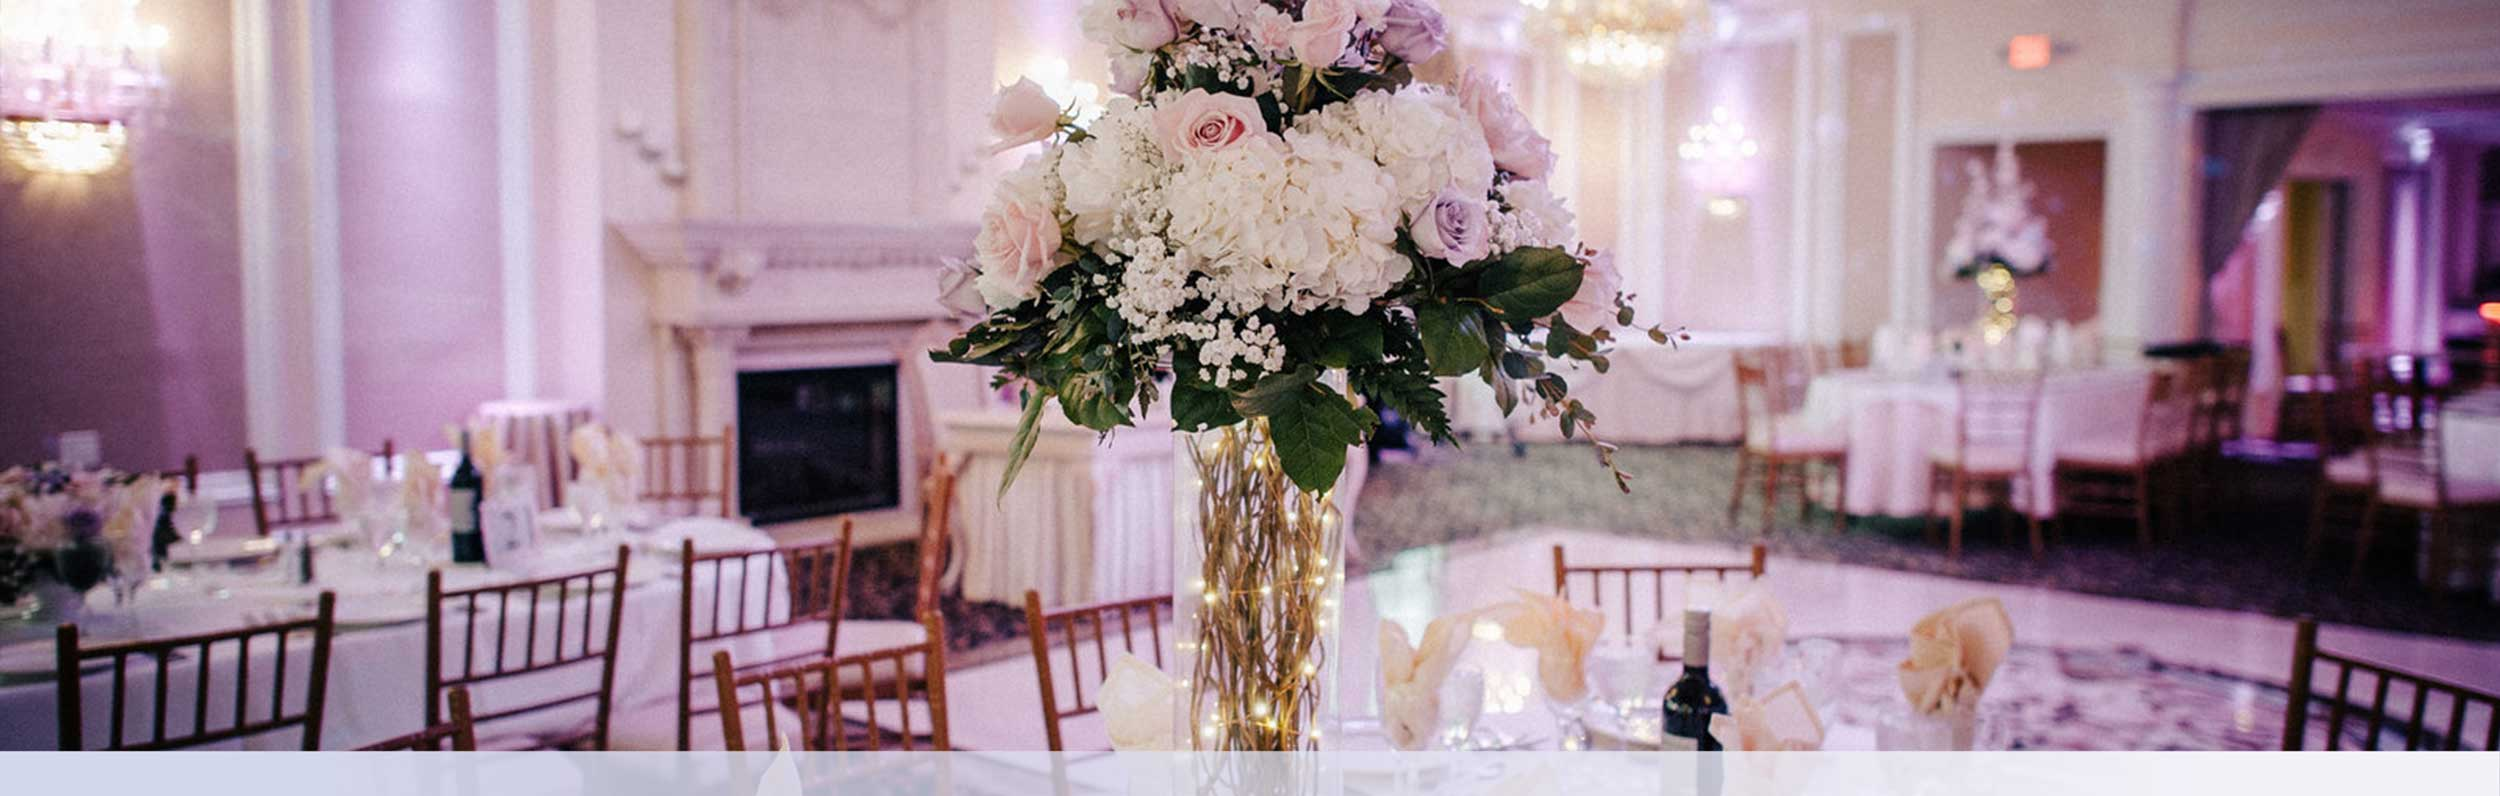 Wedding Romantic New Jersey Reception Venue